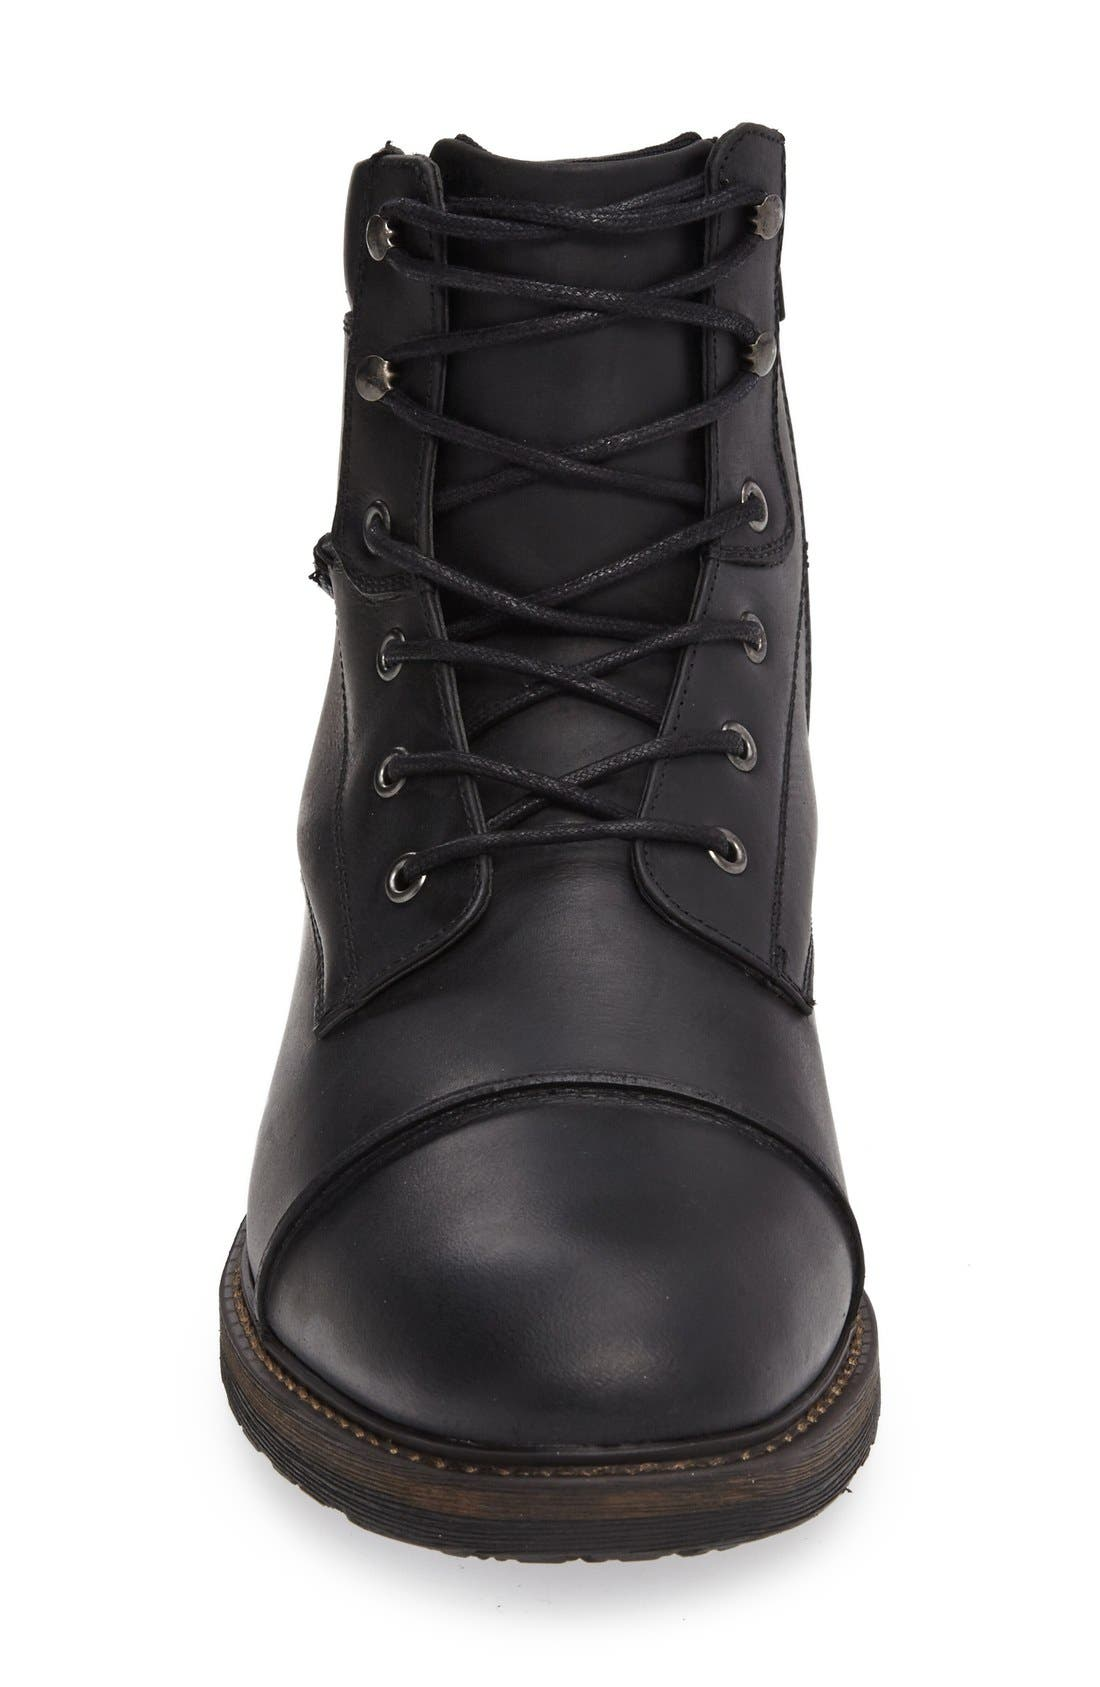 Derek Cap Toe Boot,                             Alternate thumbnail 5, color,                             Black Leather